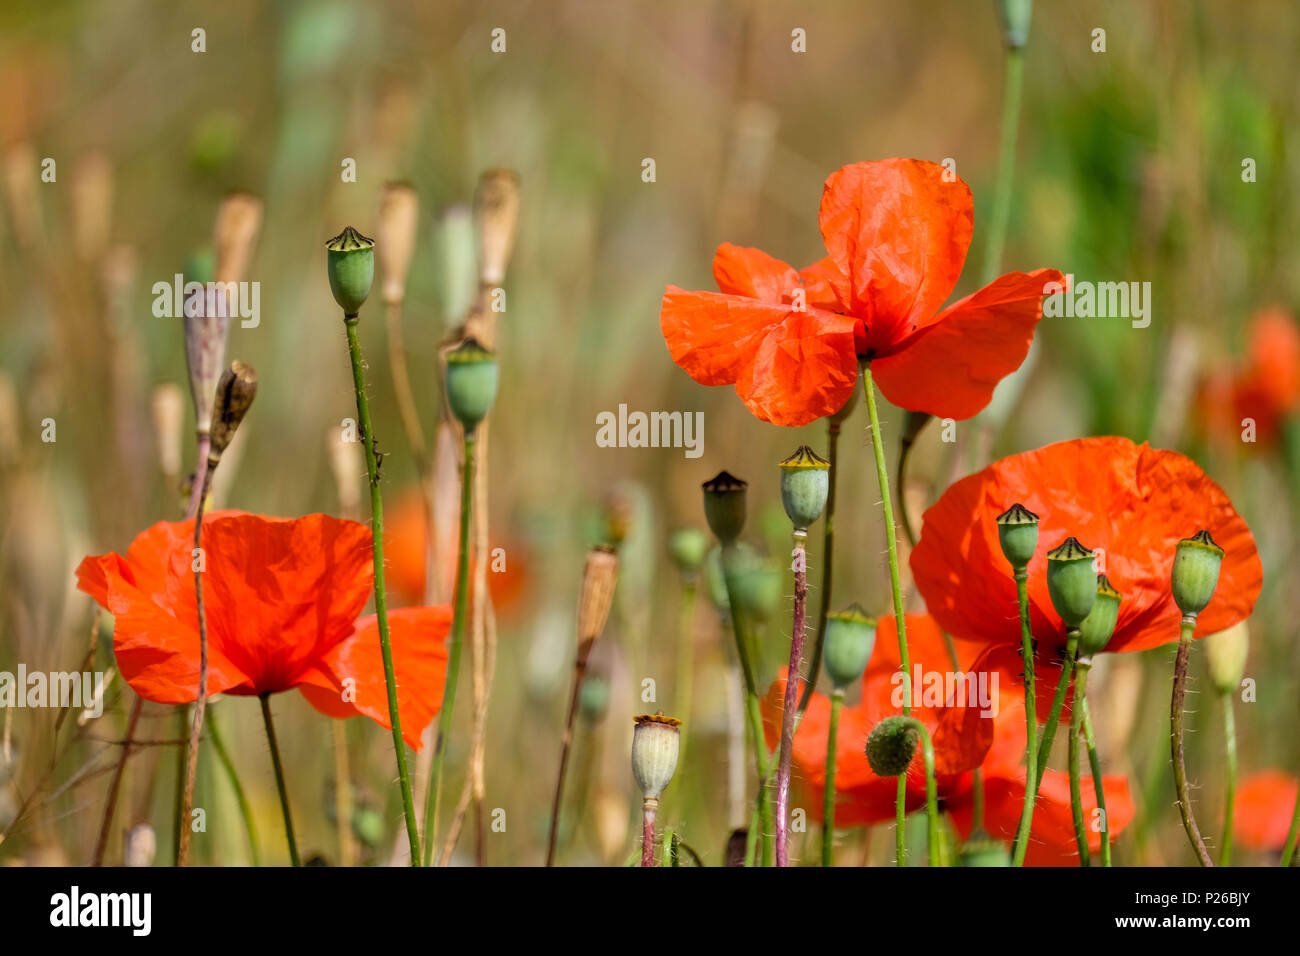 Red poppyseed blossoms in a field - Stock Image